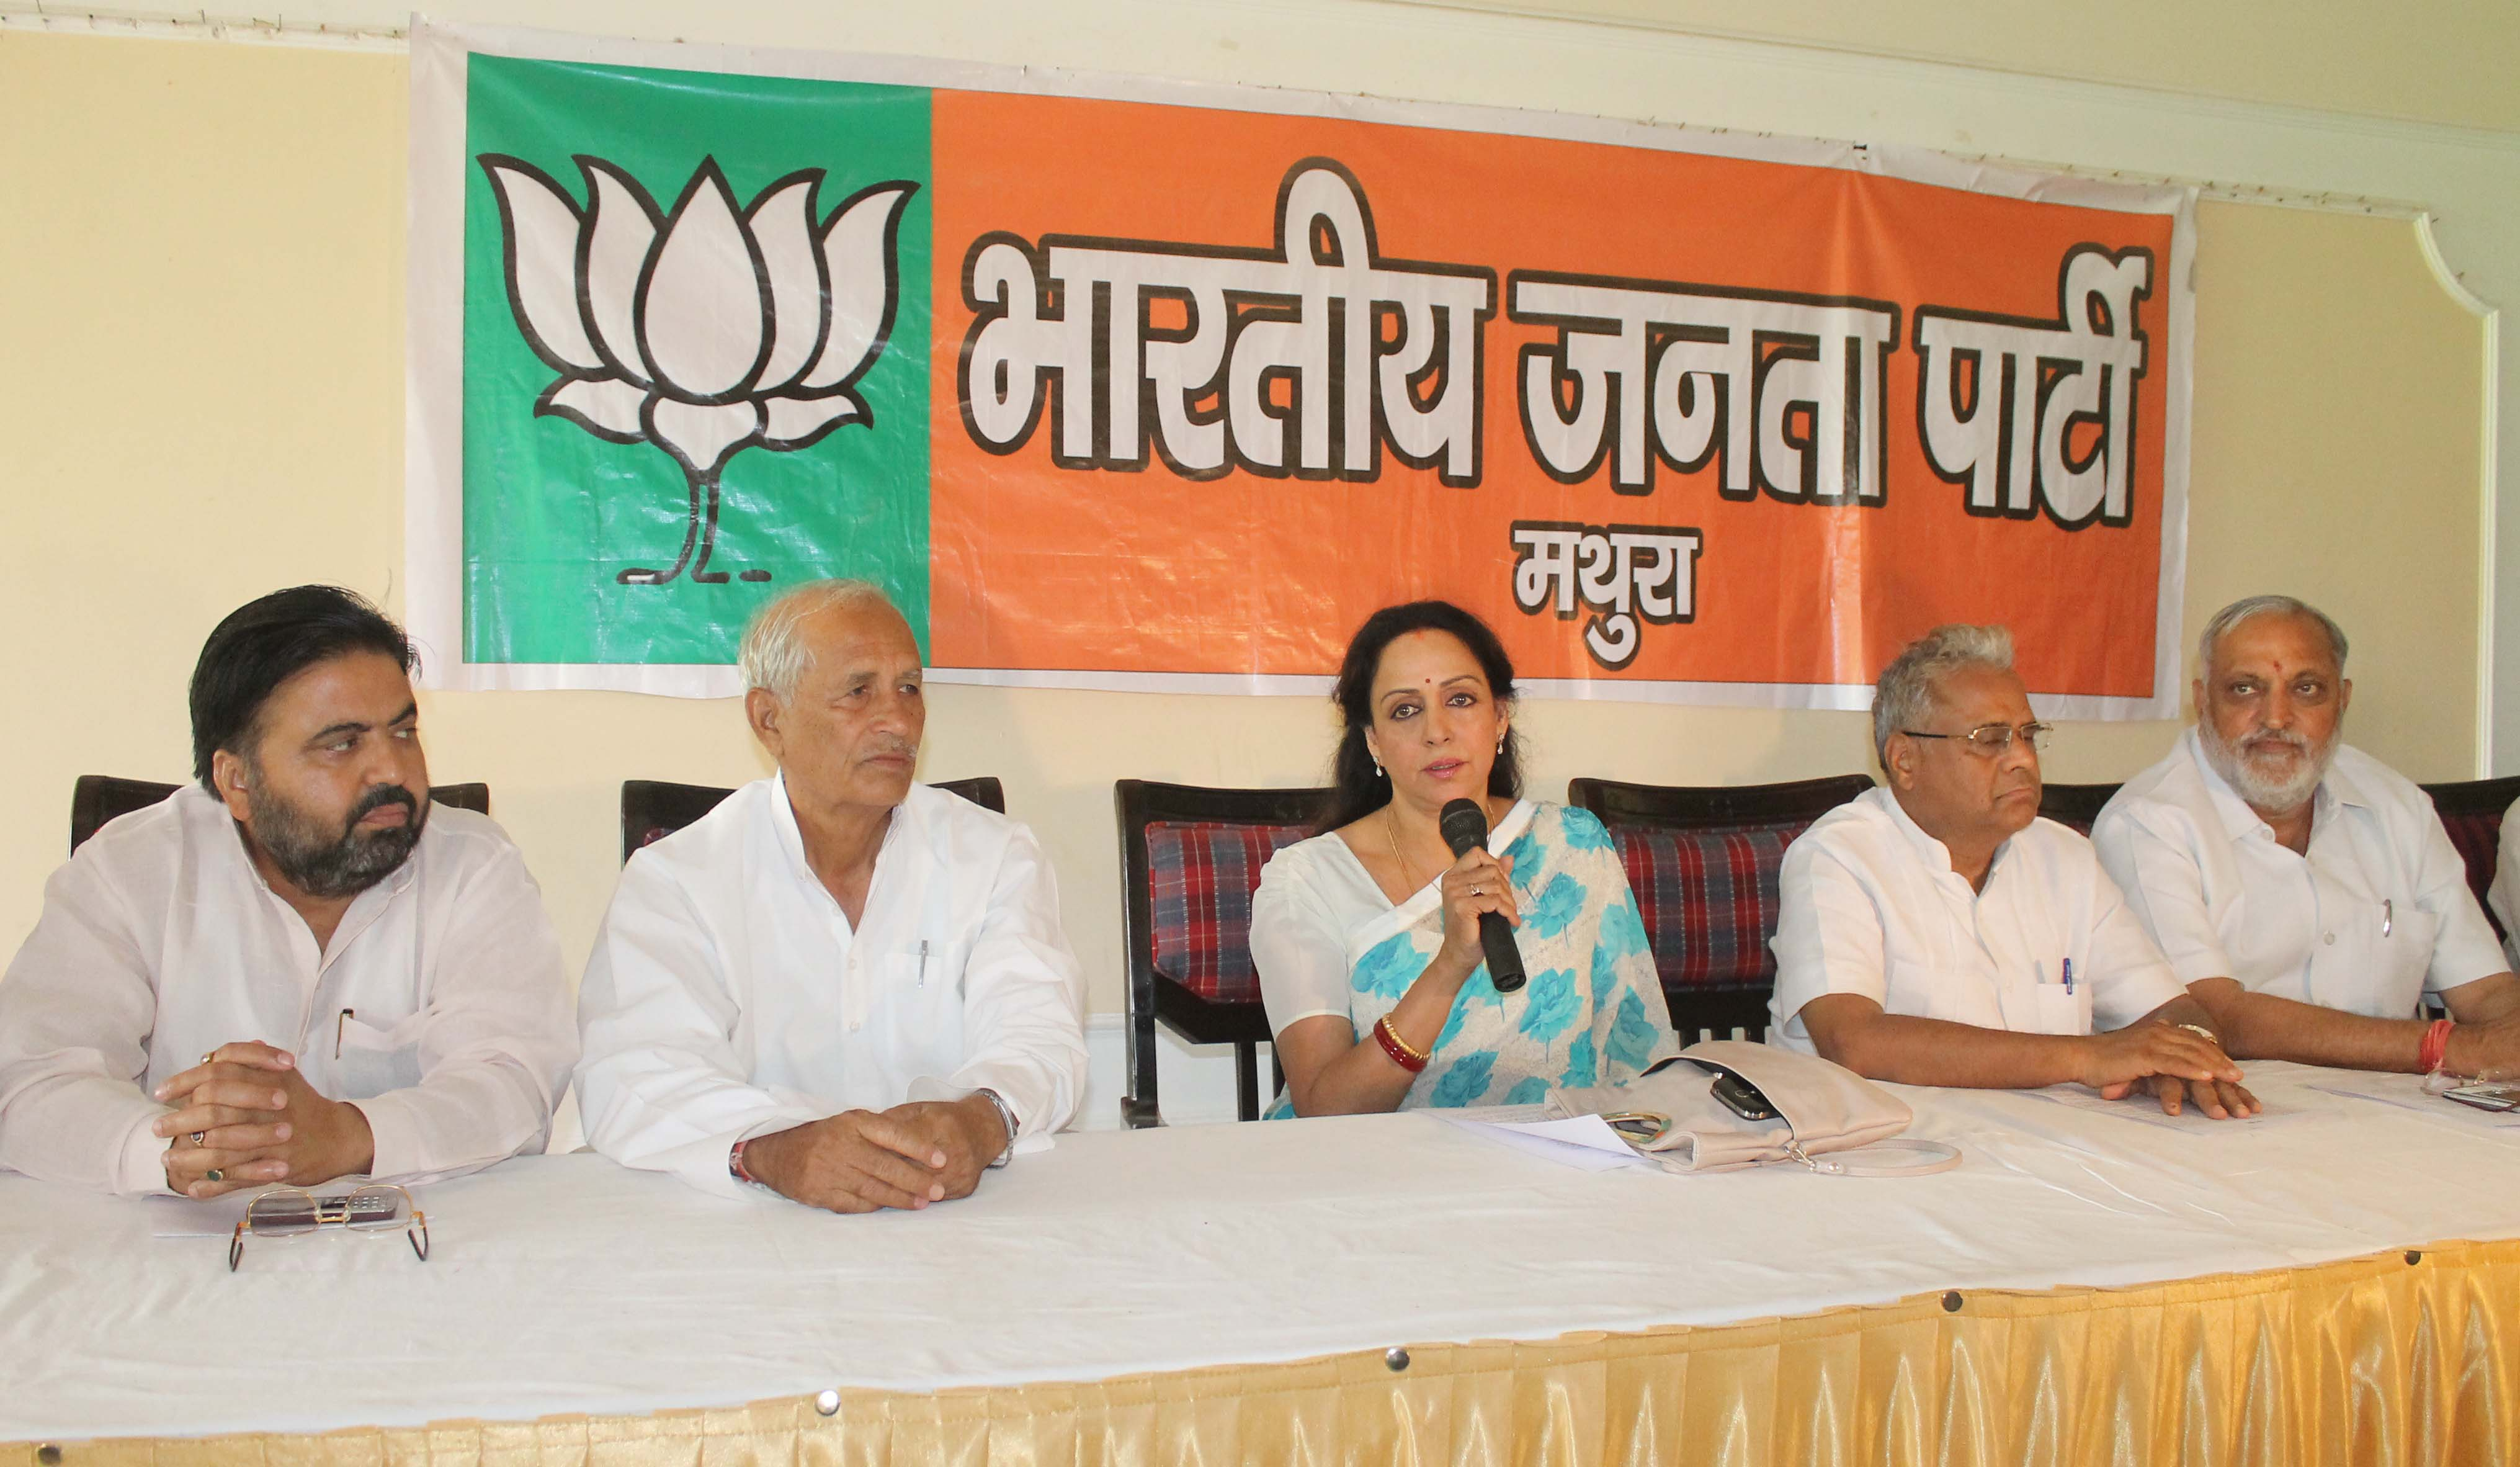 Yamuna should be included in clean Ganga mission: Hema Malini